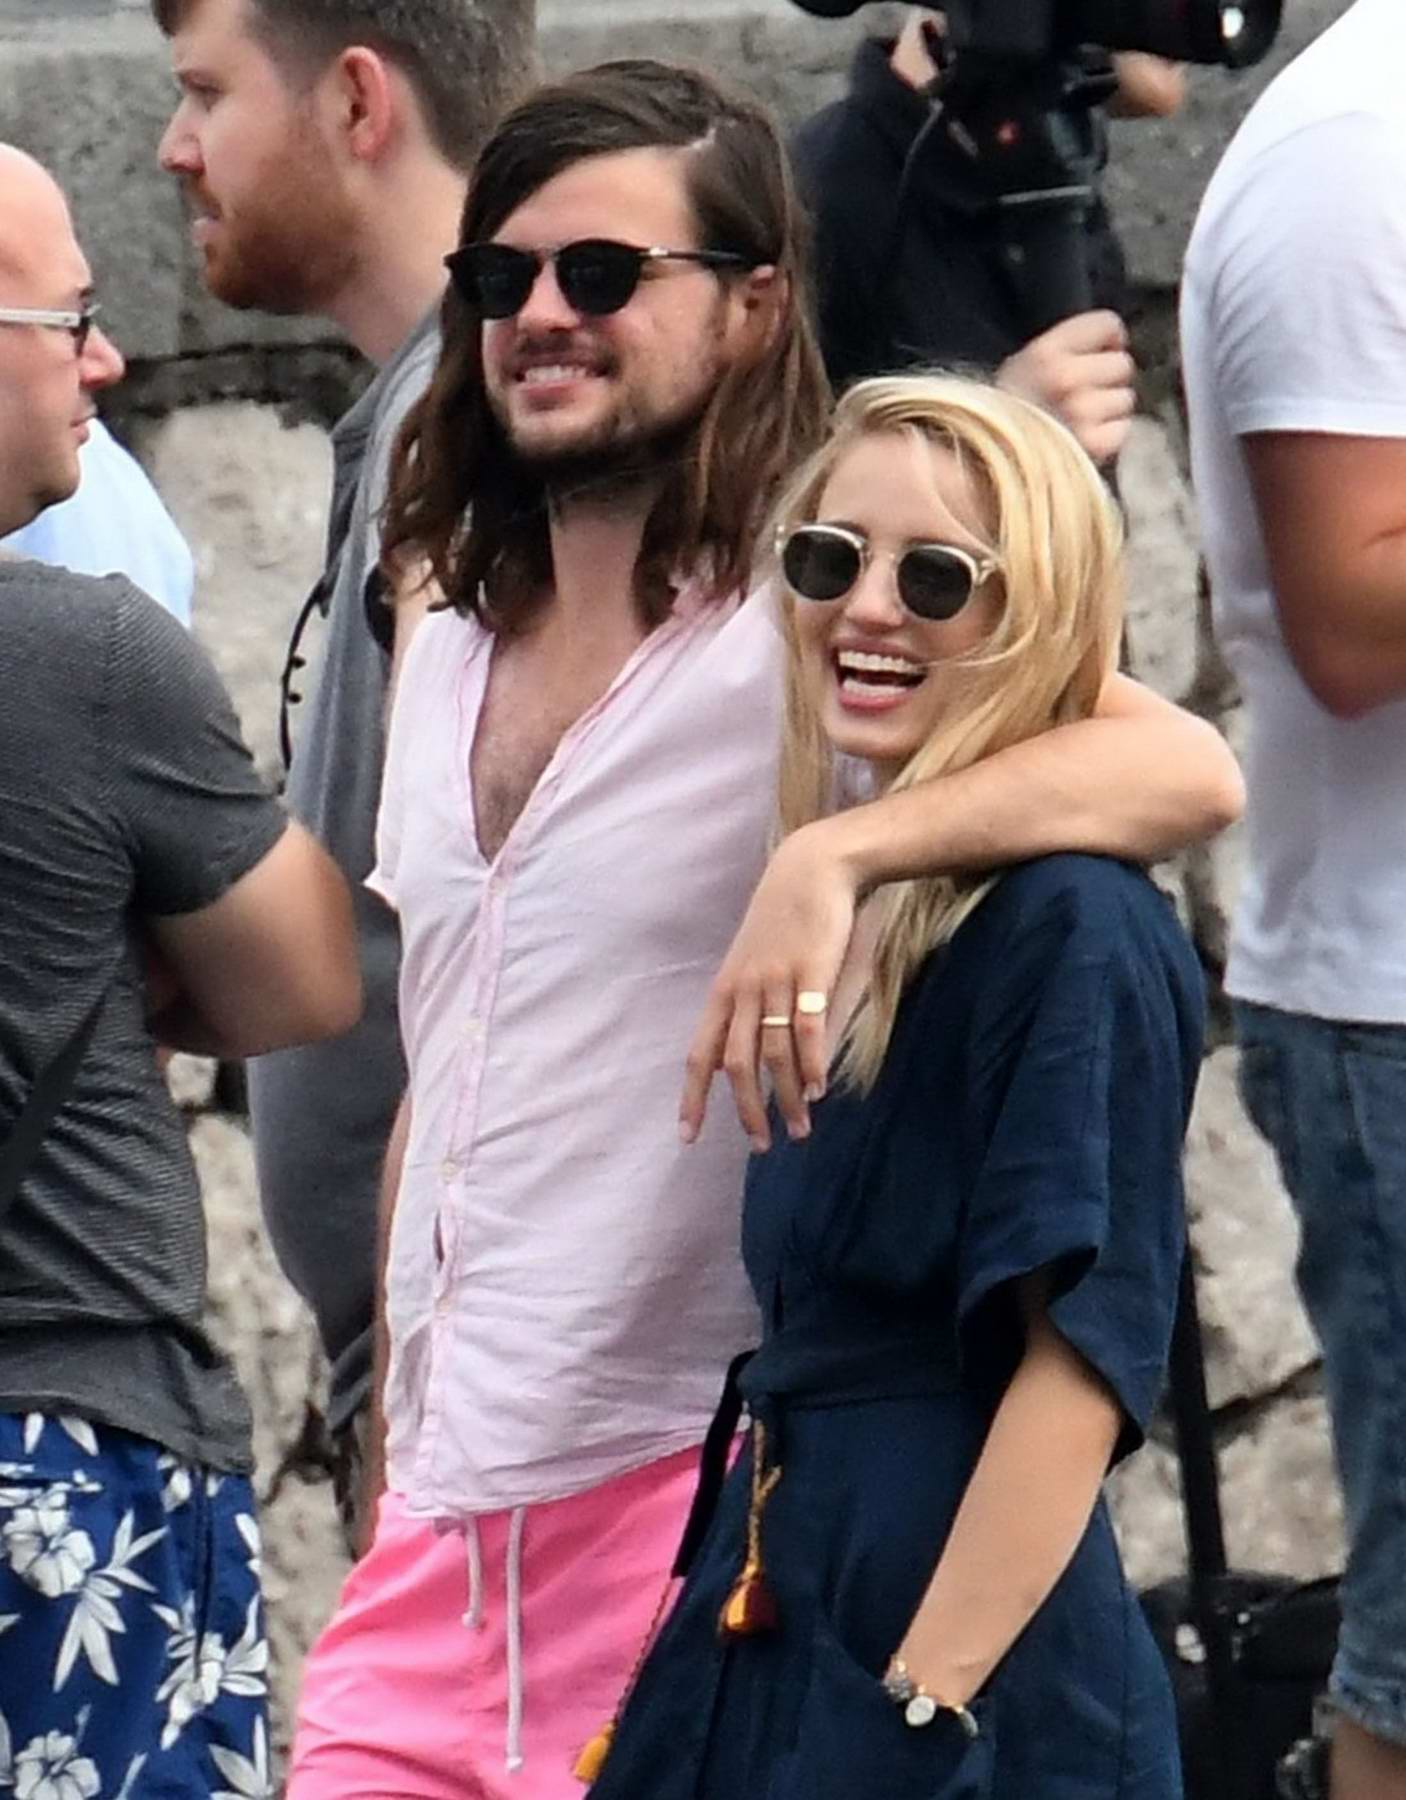 Dianna Agron Wedding.Dianna Agron And Husband Winston Marshall Arrived To Attend